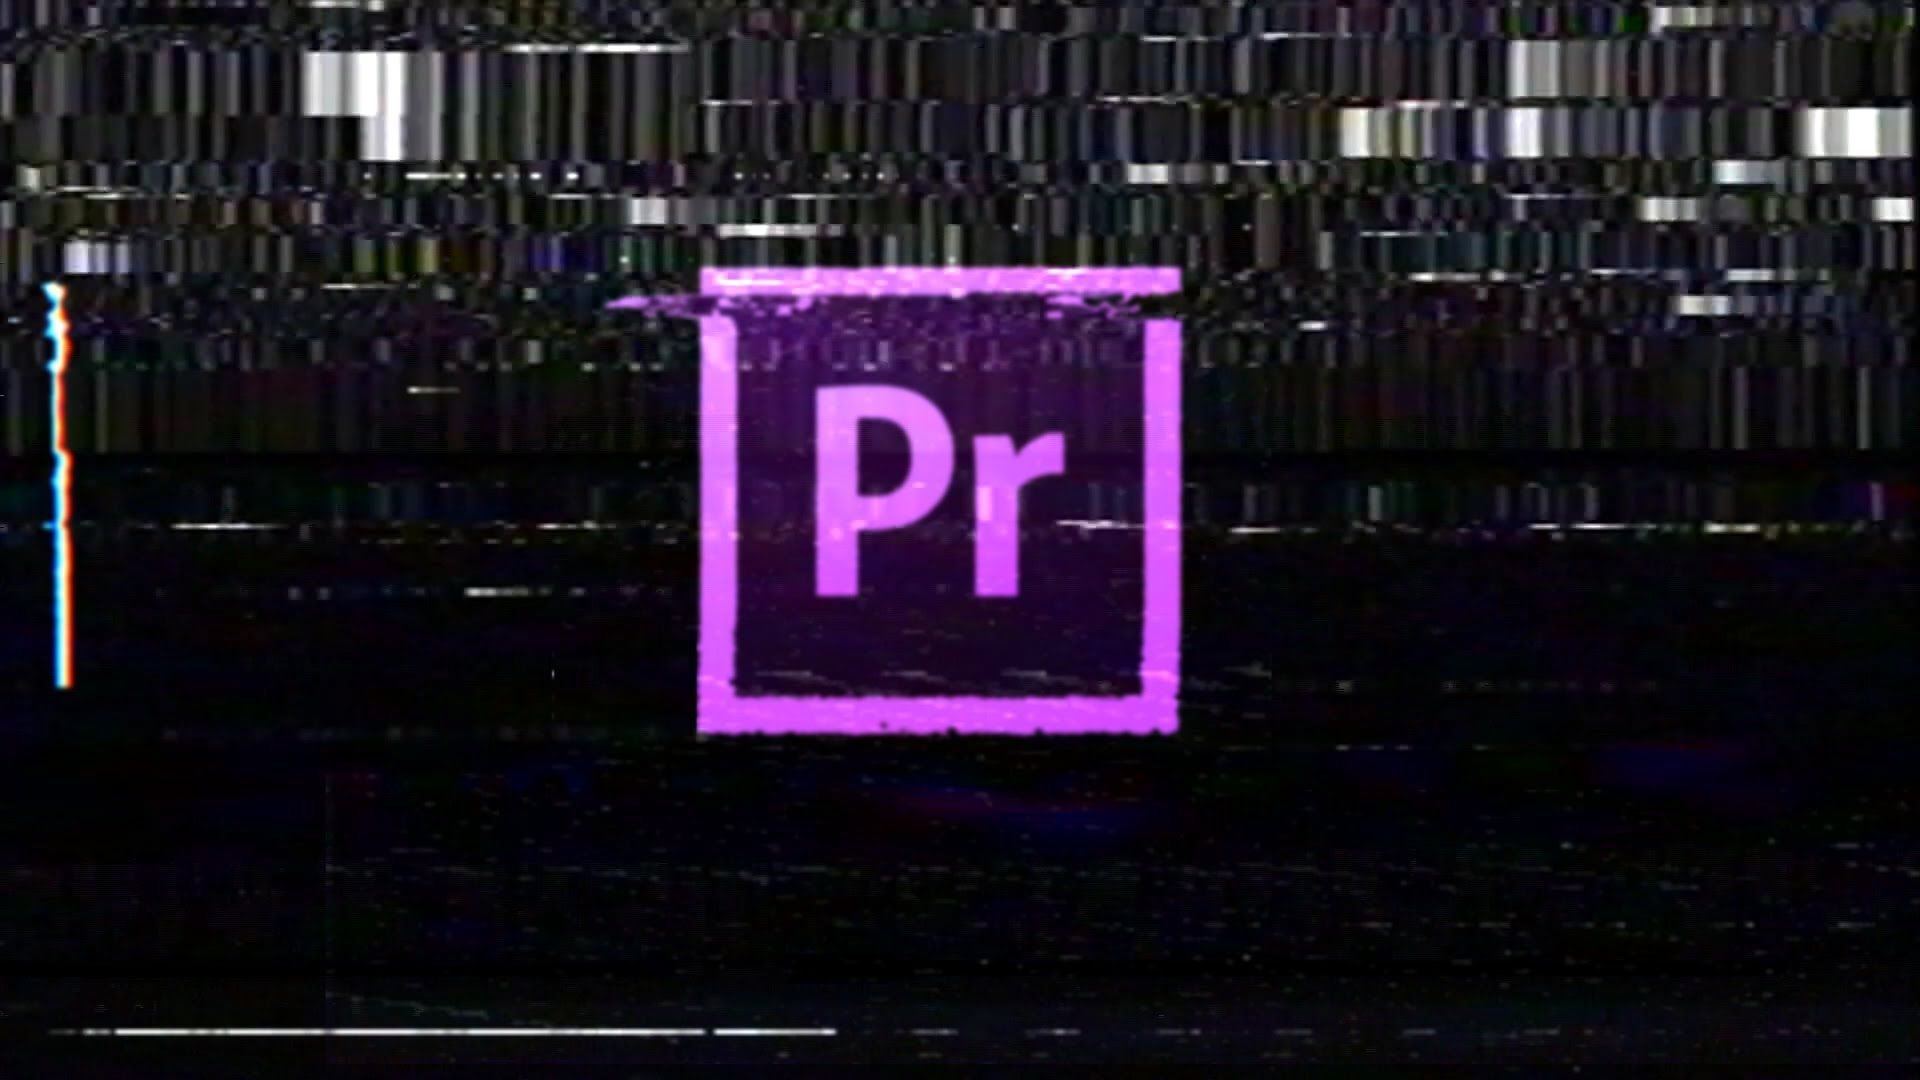 Learn the fundamental basics for adobe premiere pro cs6 in this learn the fundamental basics for adobe premiere pro cs6 in this tutorial you will learn baditri Choice Image